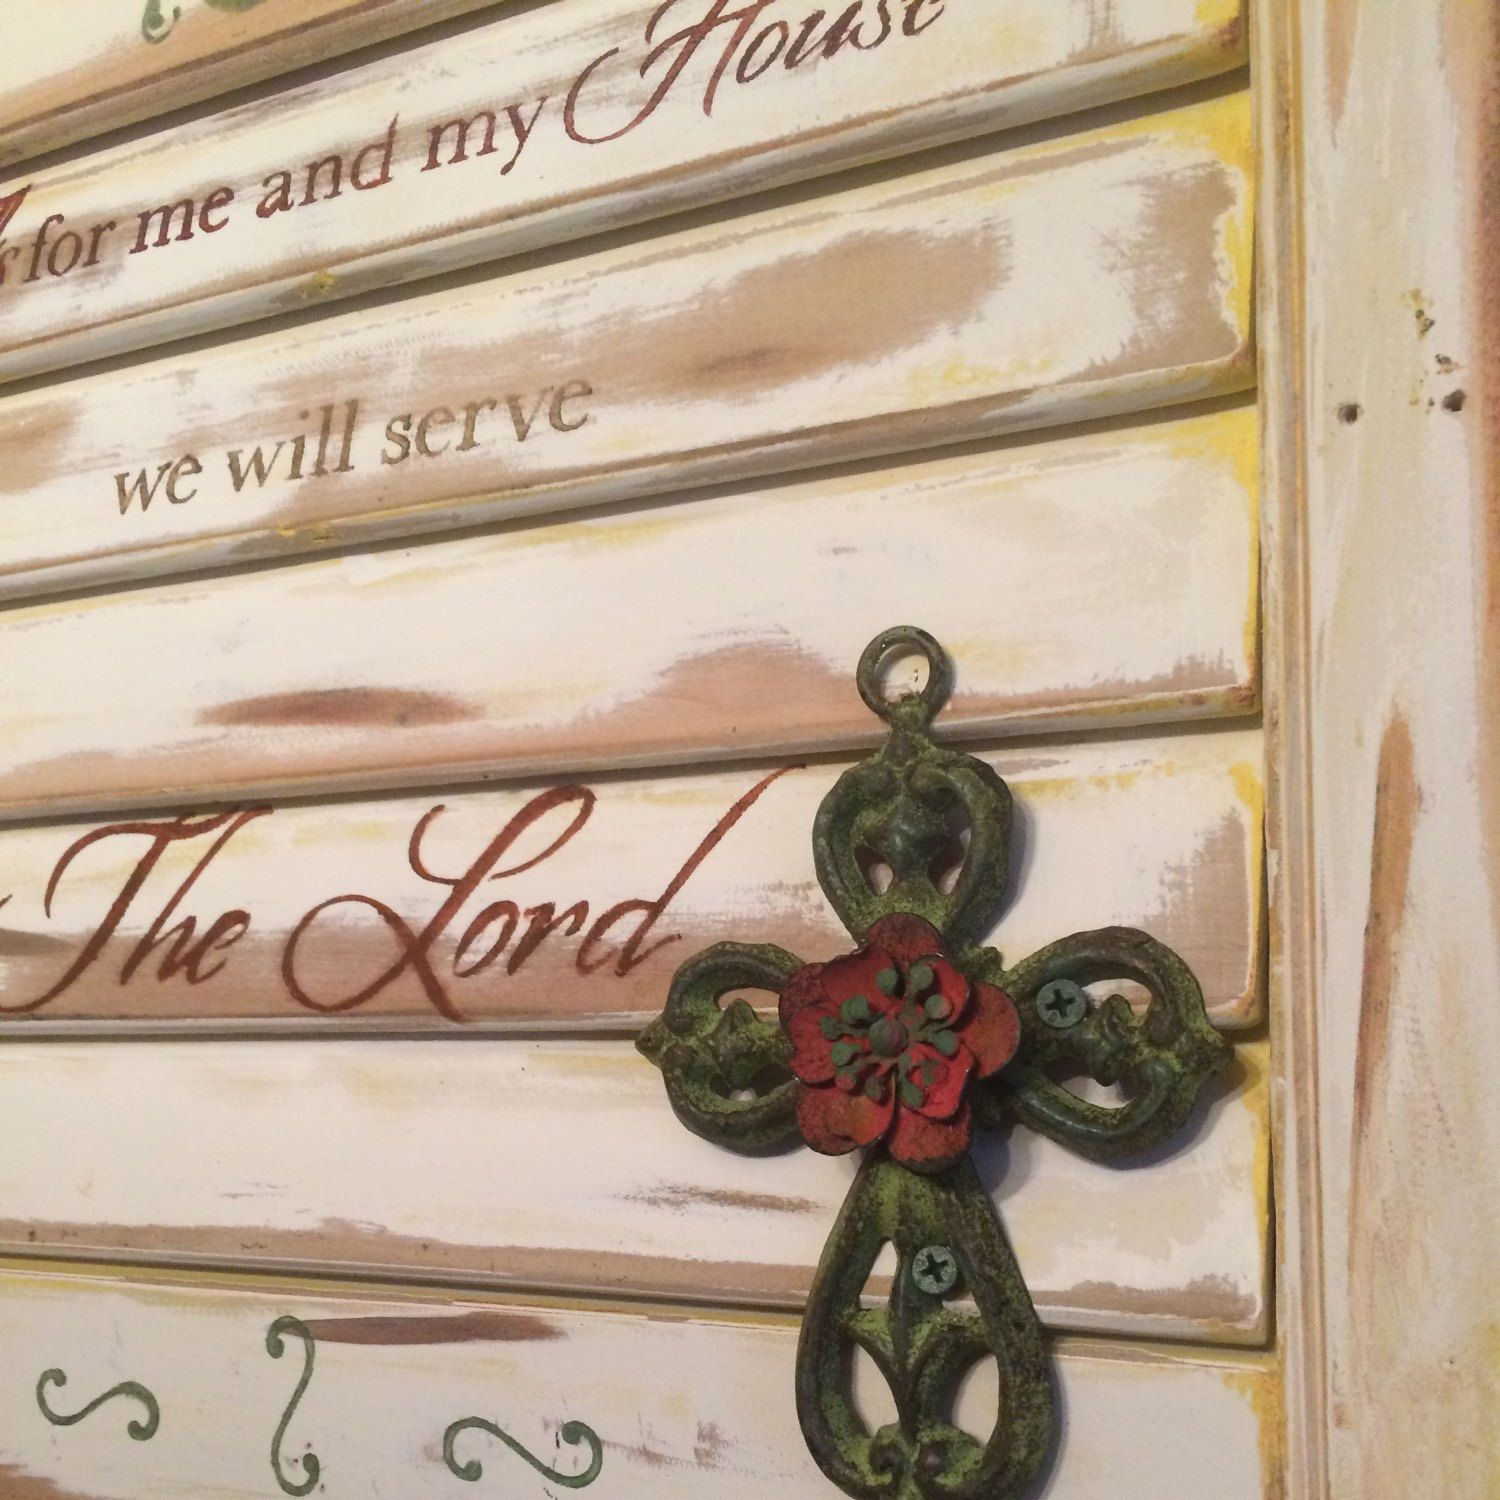 We will serve the Lord Salvaged shutter Old wood